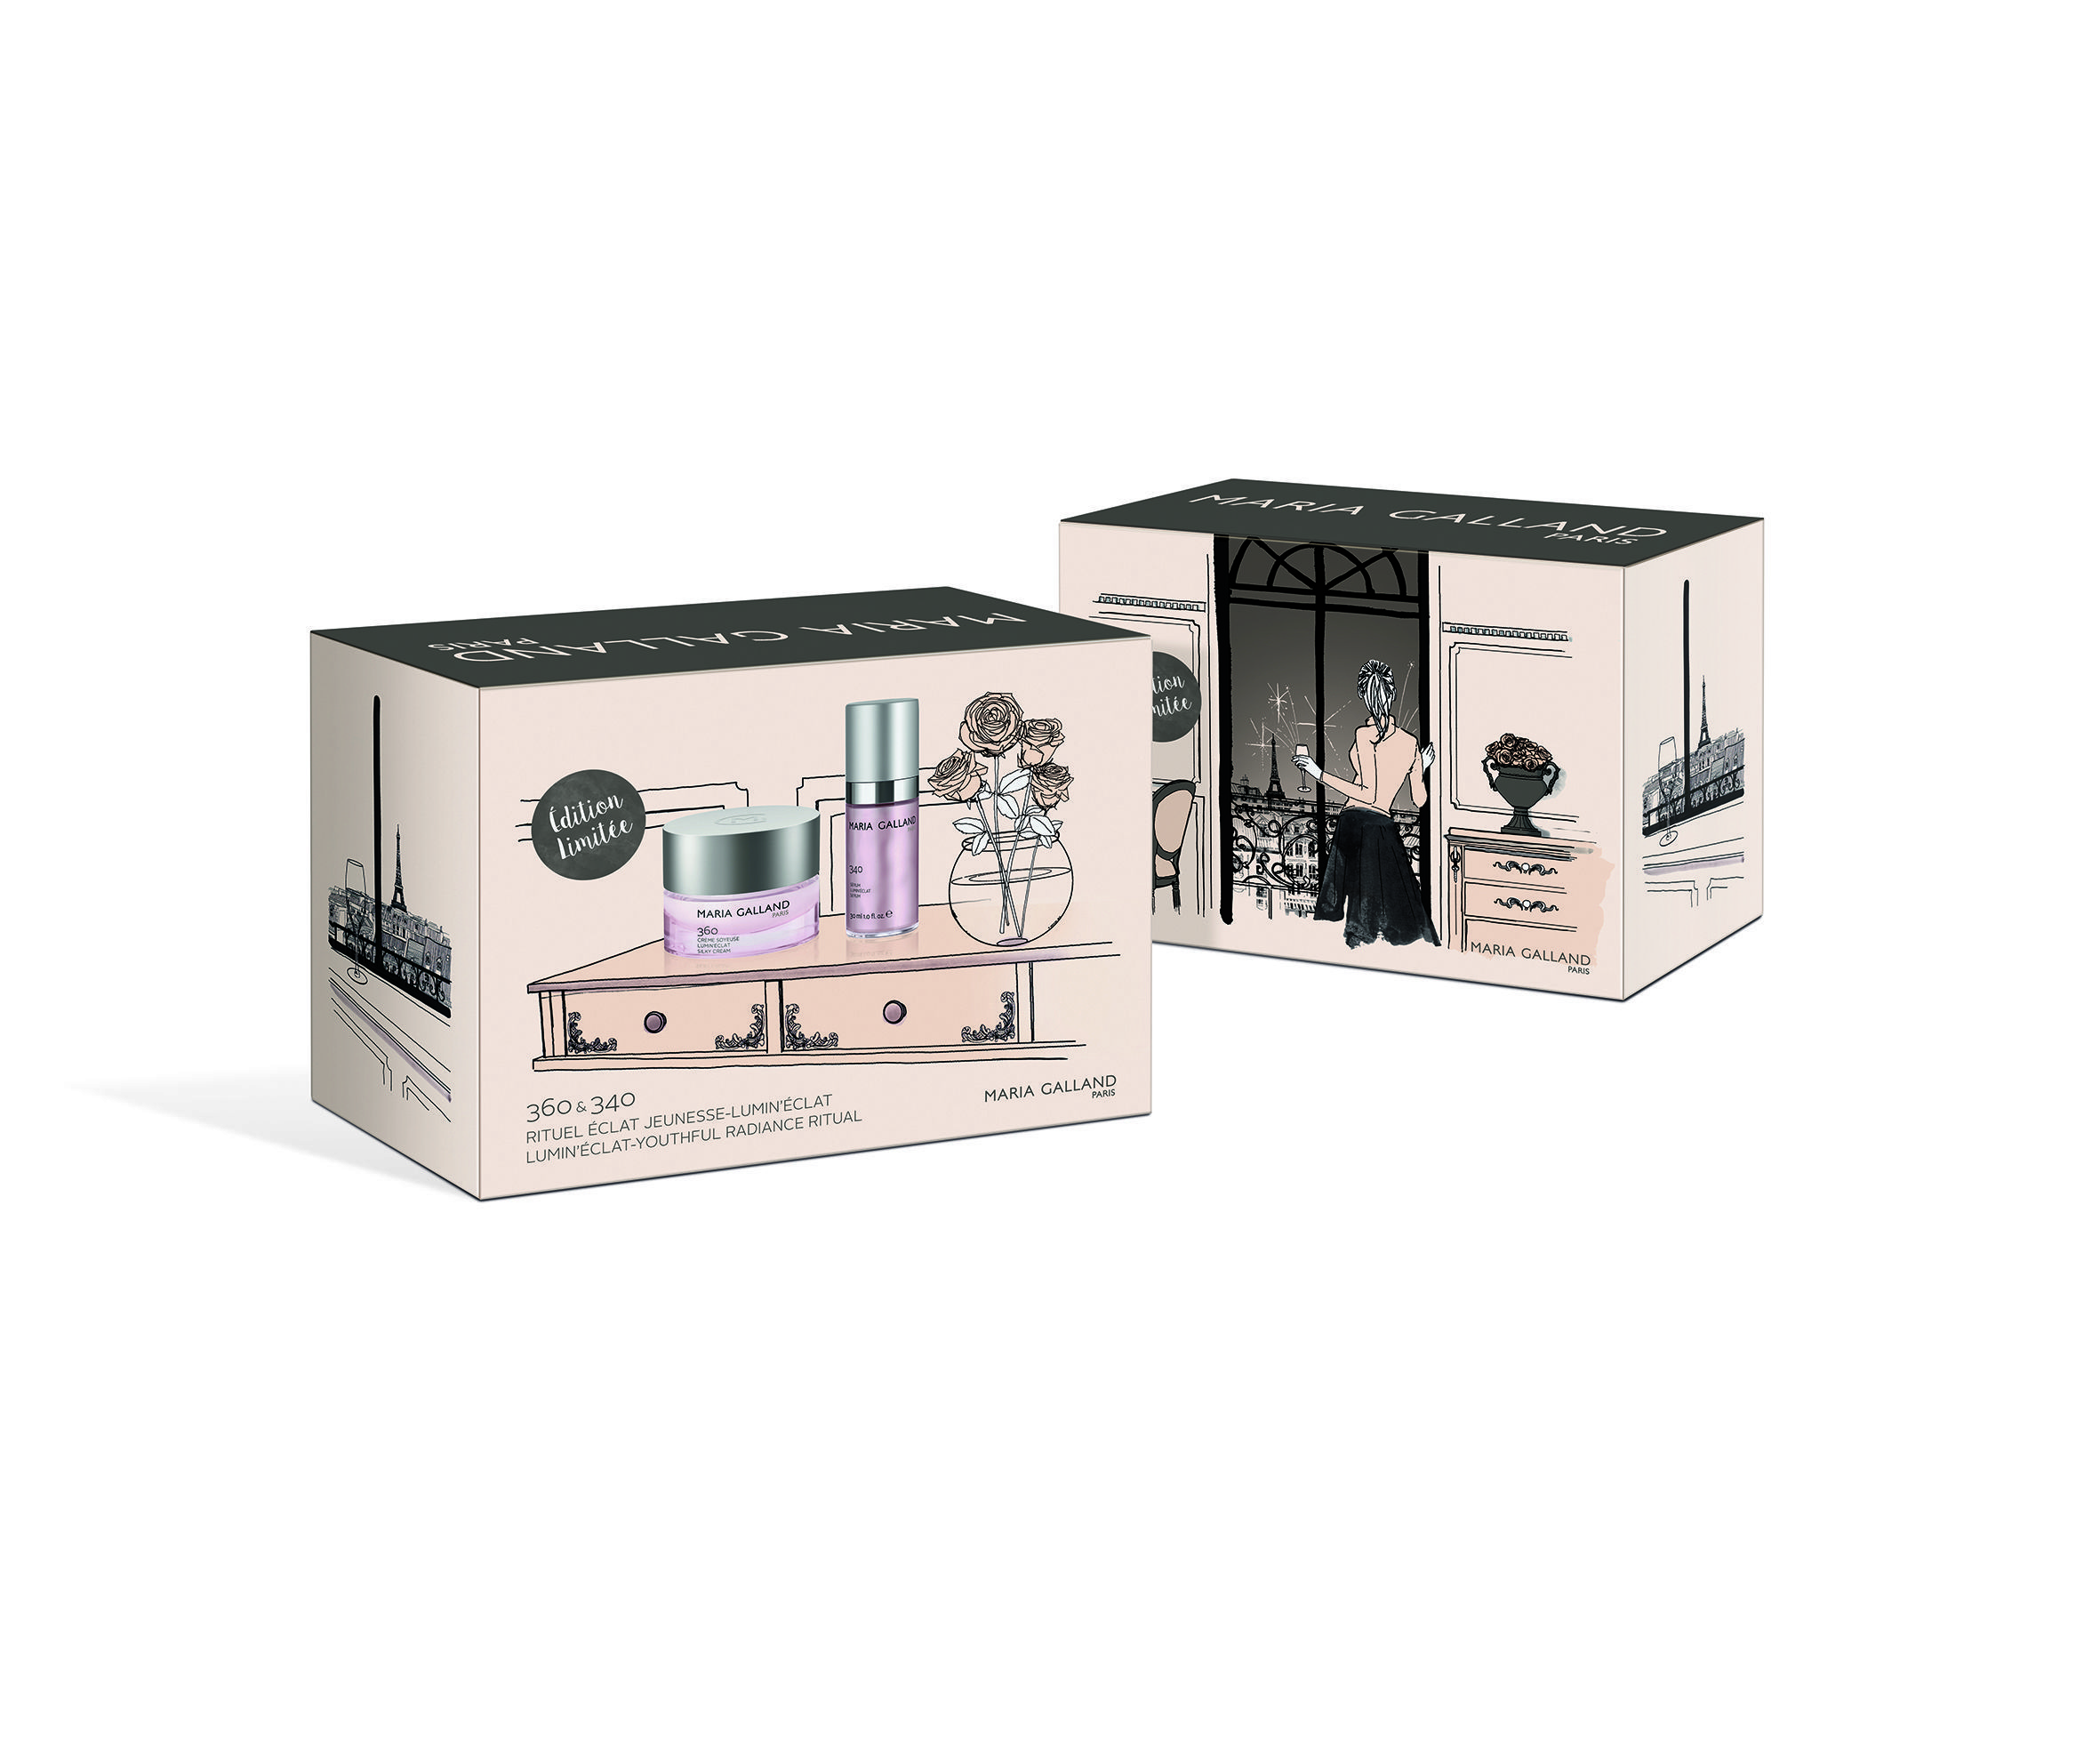 Coffret Lumin'Éclat de Maria Galland